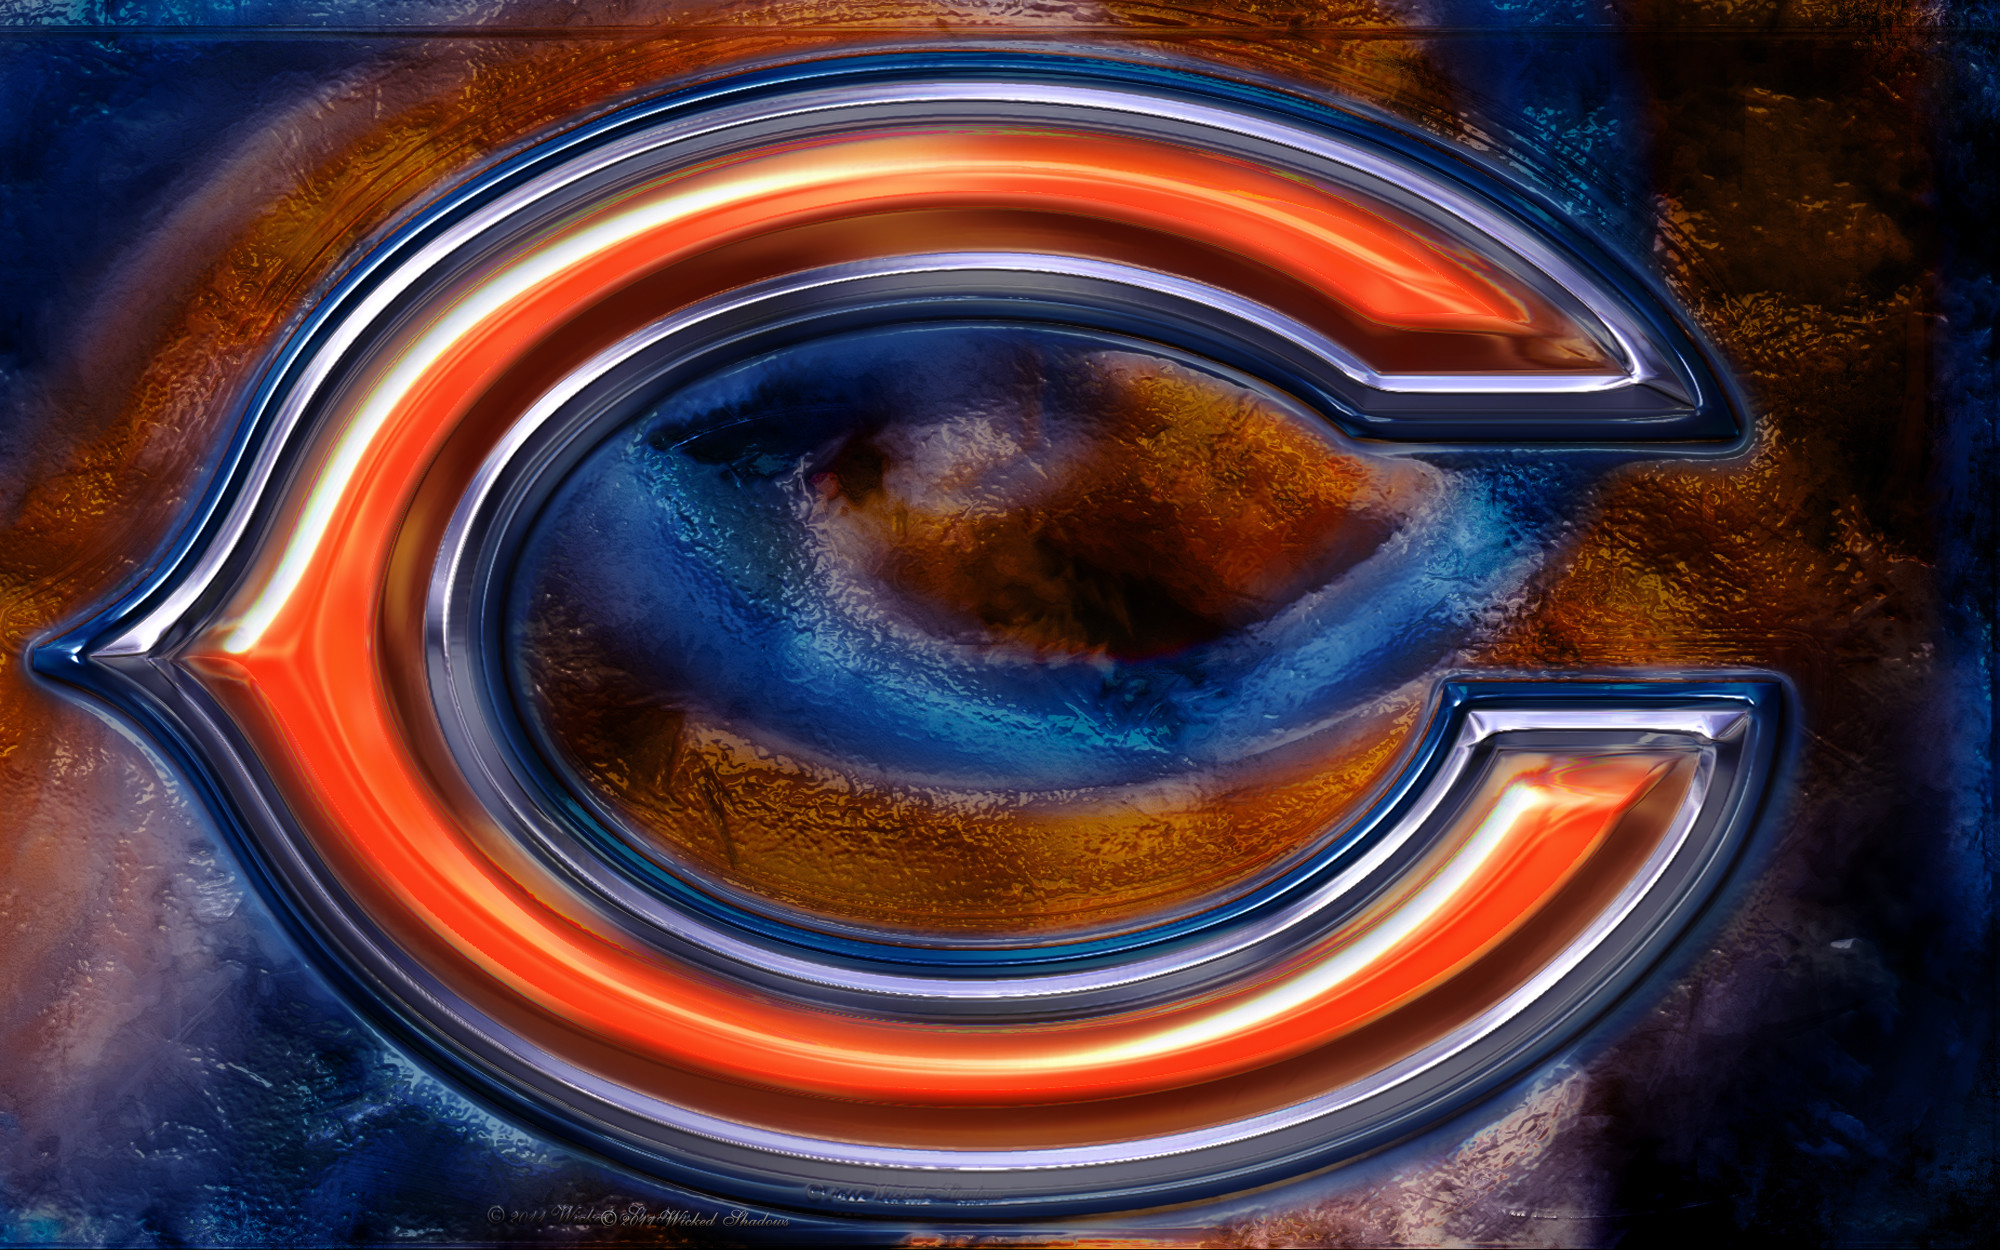 2000x1250 Chicago Bears Logo Wallpaper | Wallpaper Download